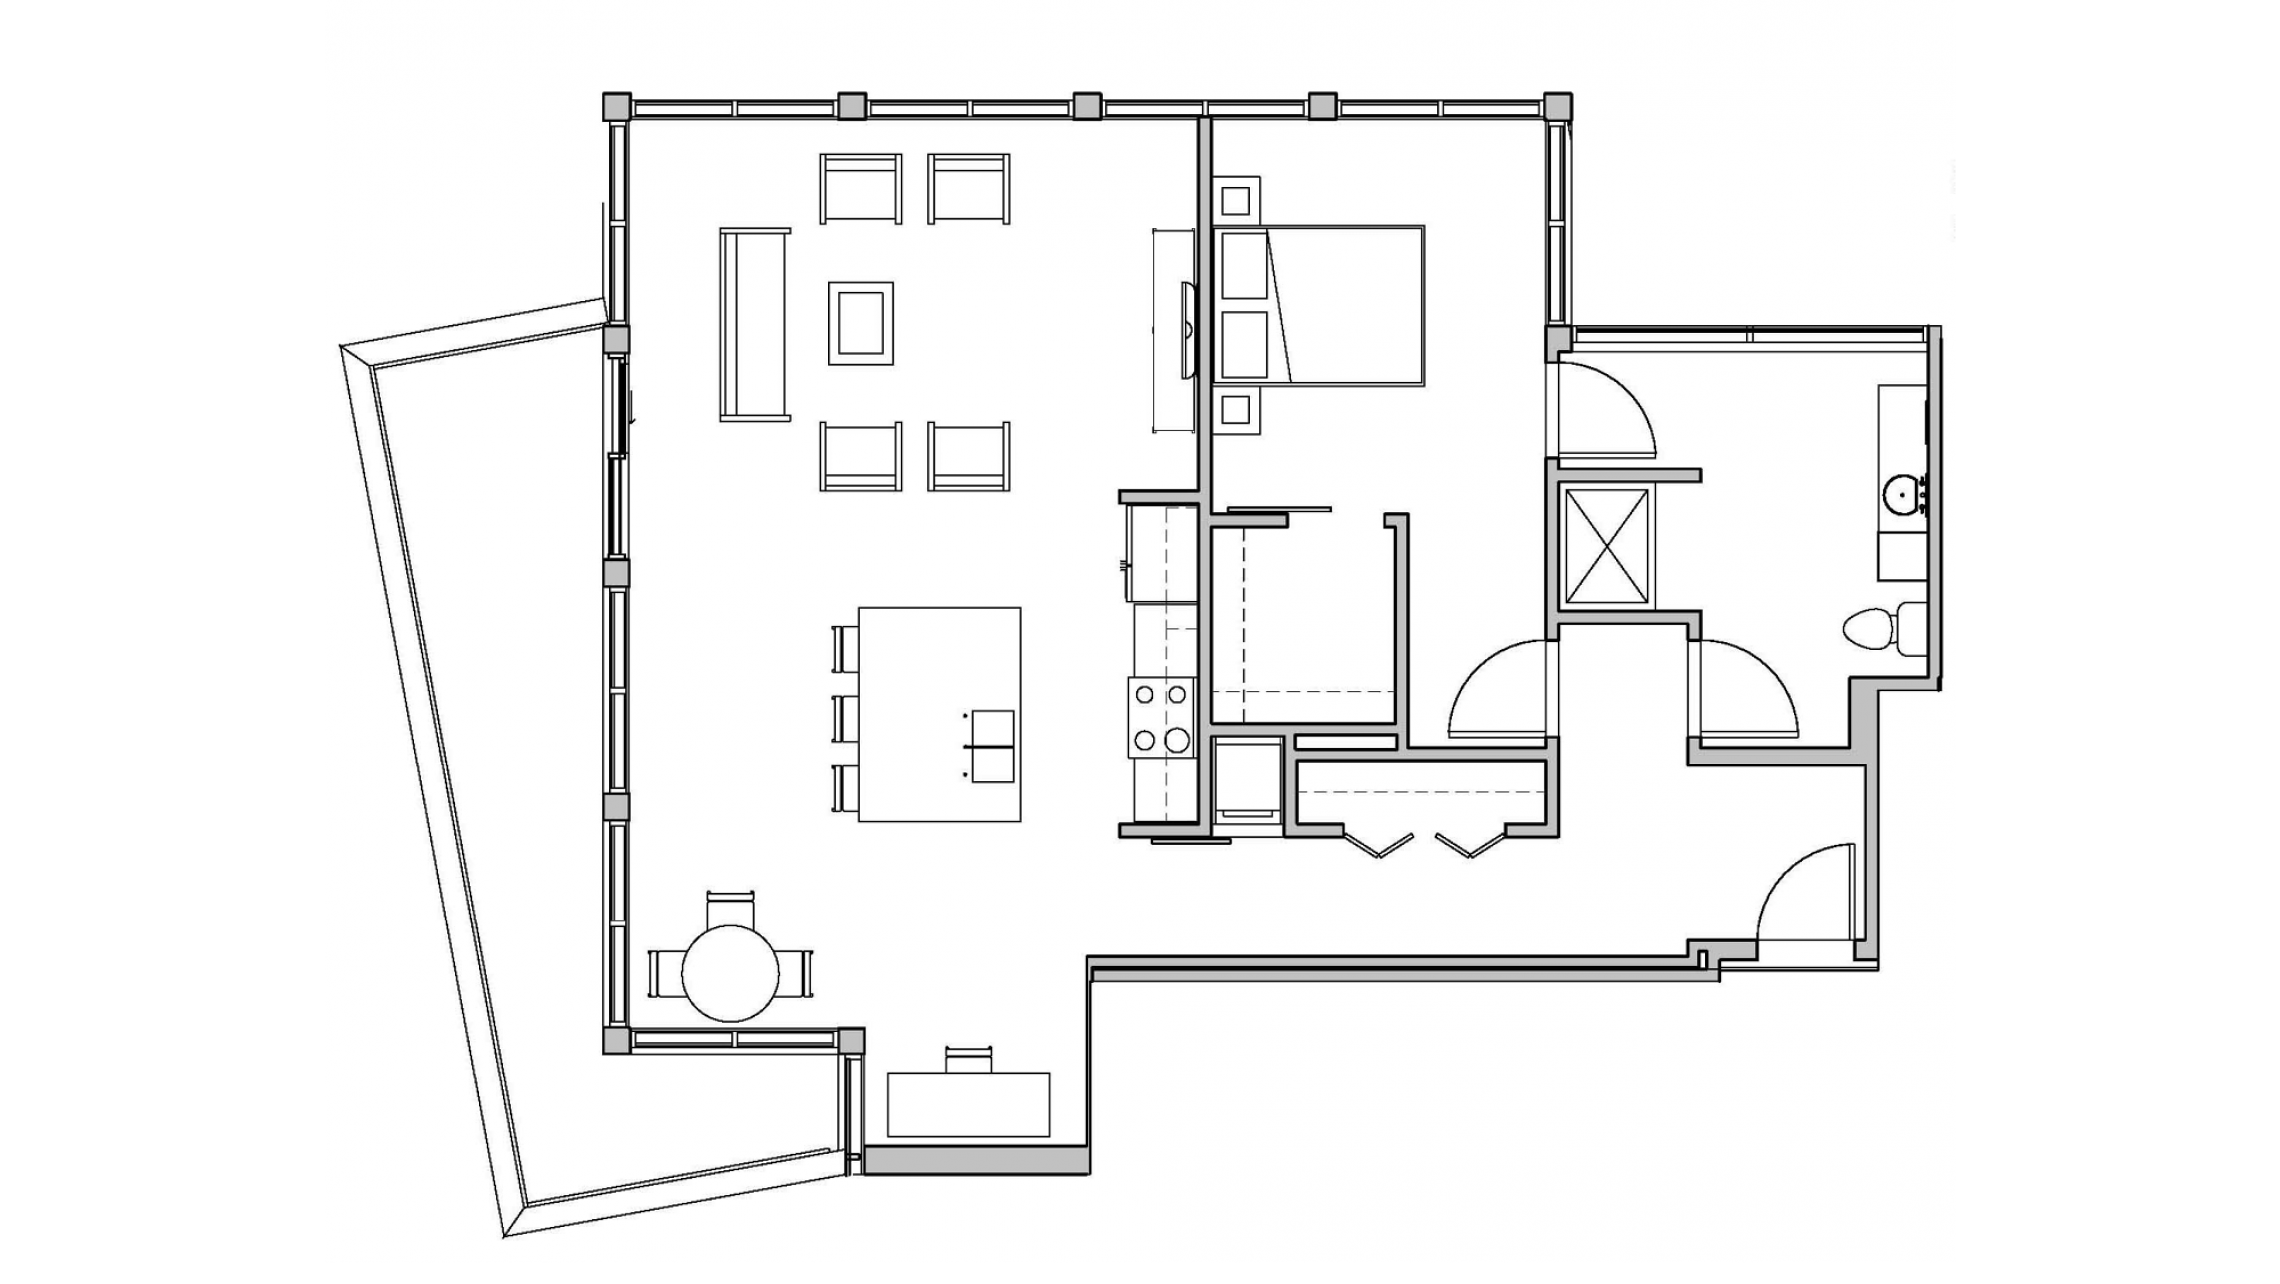 ULI Seven27 302 - One Bedroom, One Bathroom